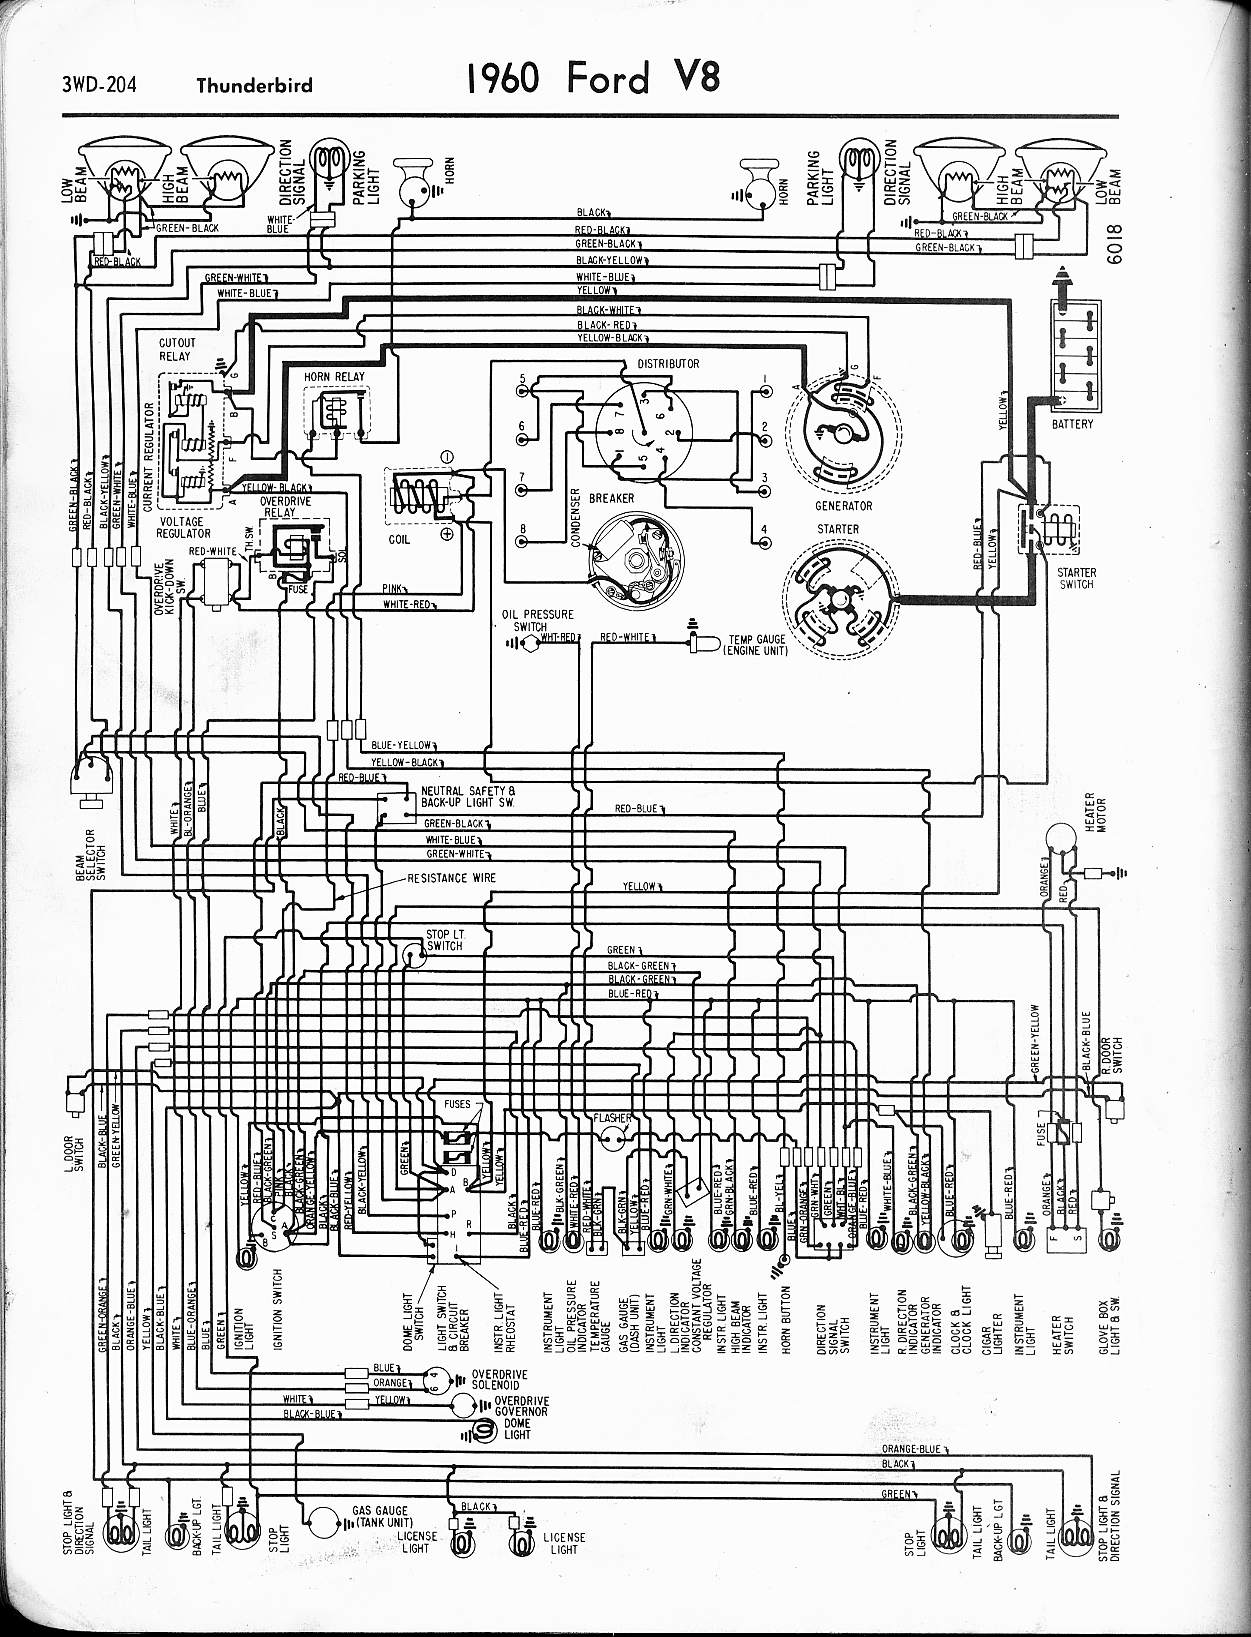 1998 Thunderbird Wiring Diagram List Of Schematic Circuit Kenwood Excelon Kfc Xw10 1957 Ford Turn Signal Auto Electrical Rh Stanford Edu Uk Co Gov